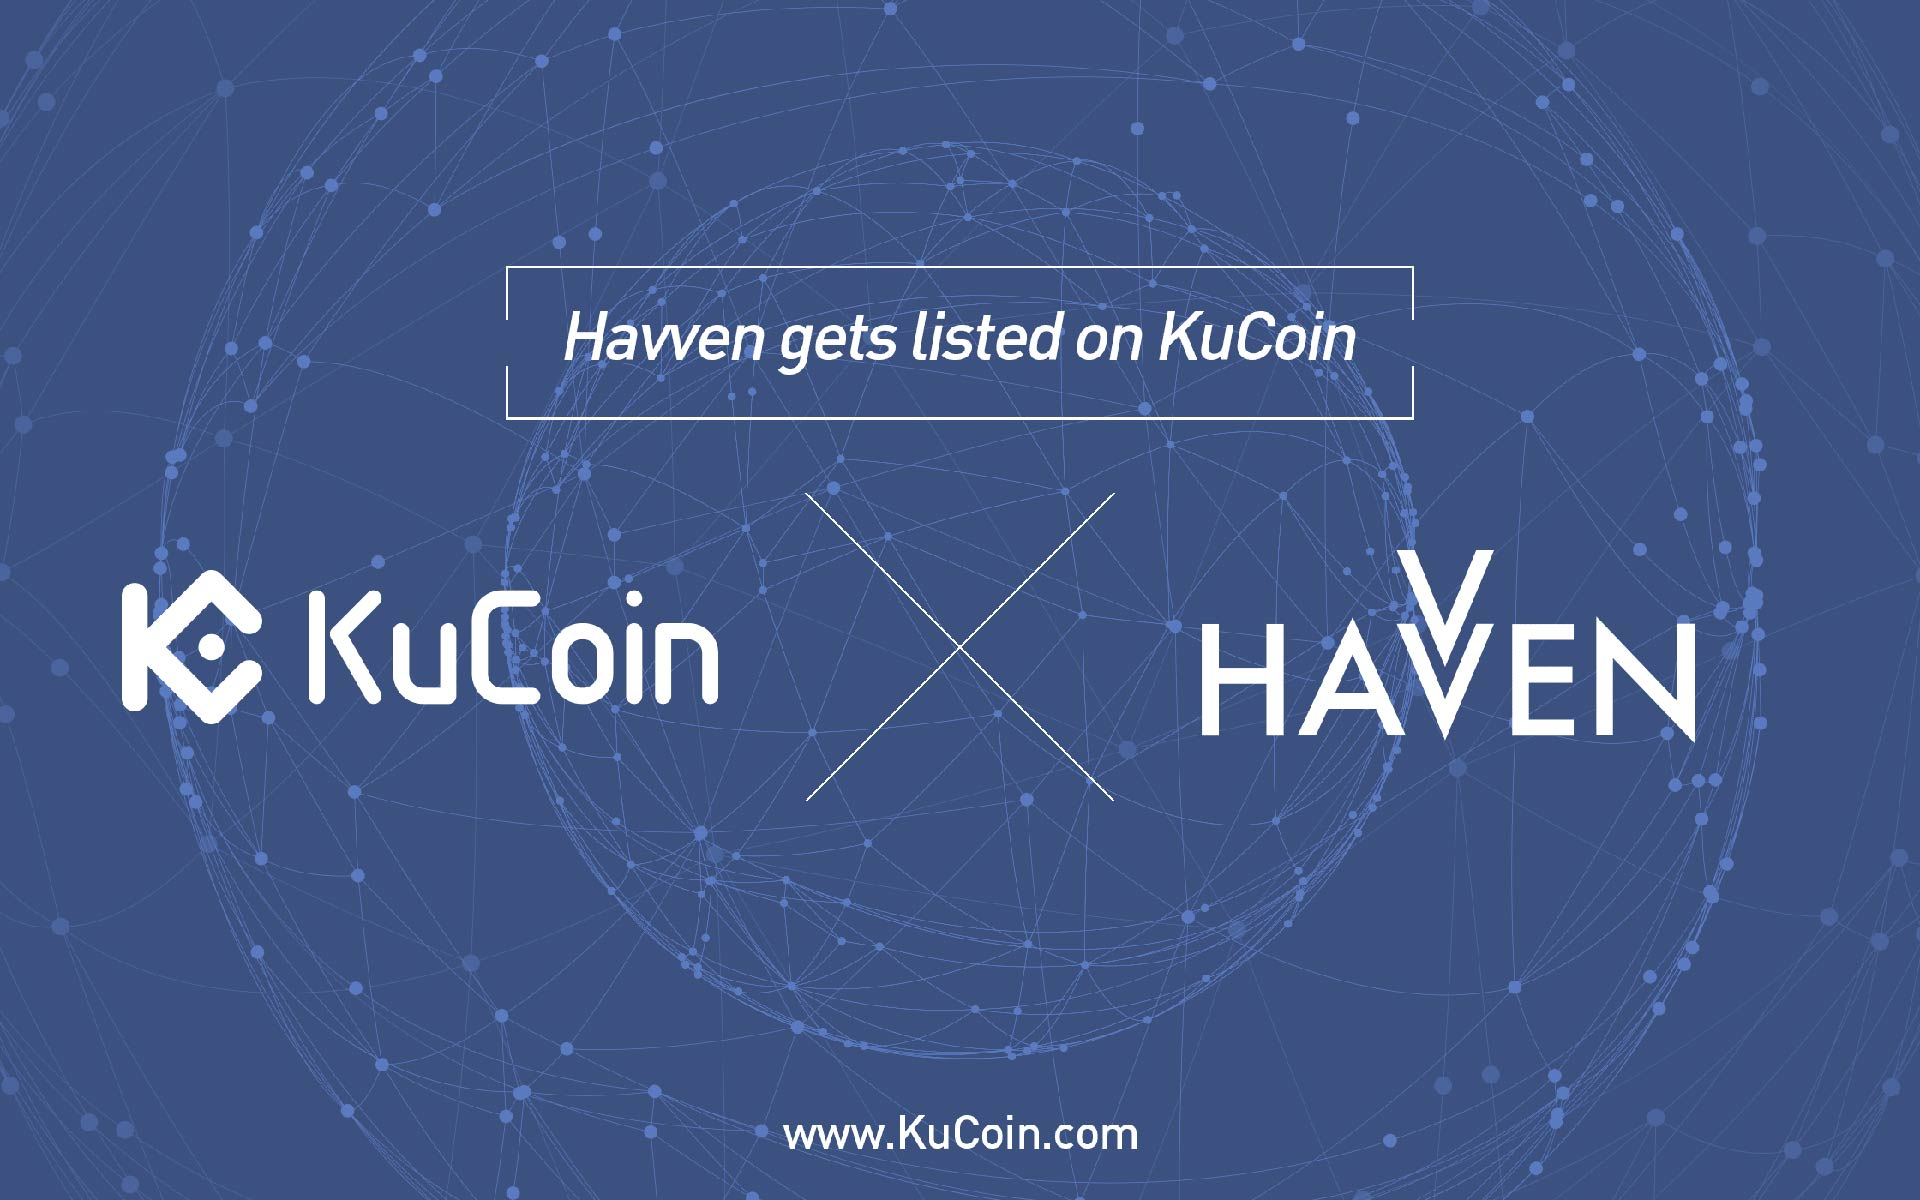 Havven (HAV) Gets Listed on KuCoin!